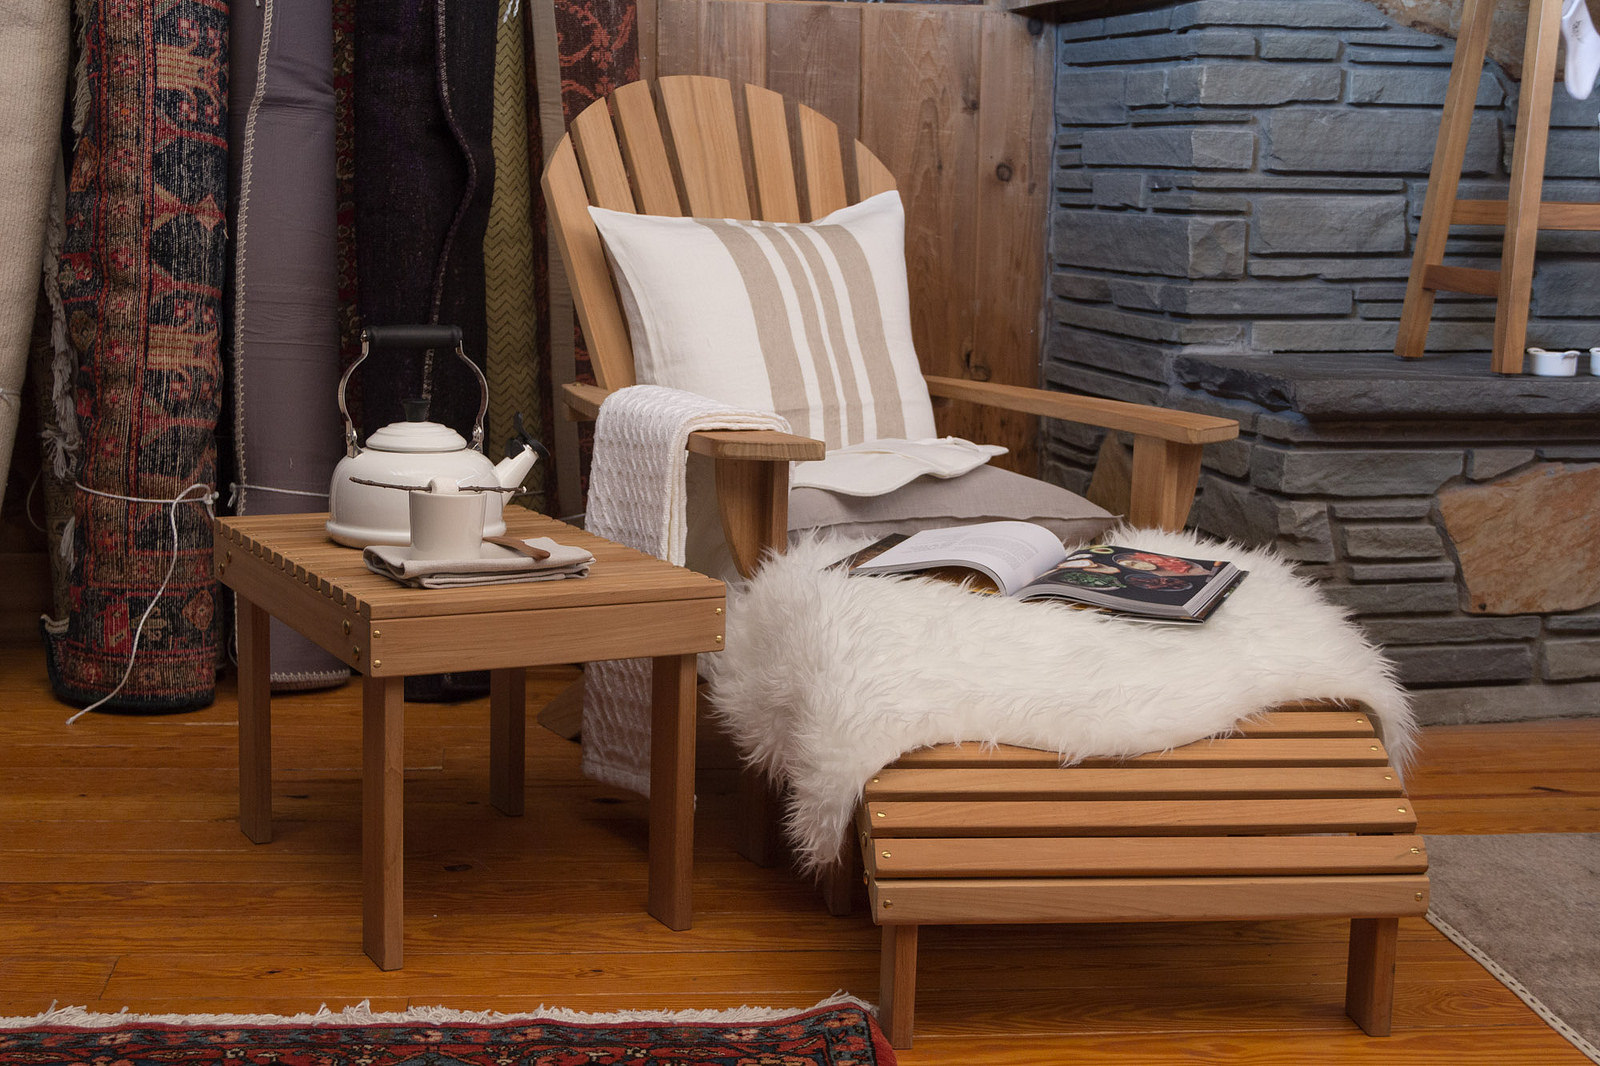 Barlow Tyrie Adirondack  teak armchair,  Libeco Home Serengeti throw pillow ,  Le Creuset whistling kettle ,  Brahms Mount baby blanket